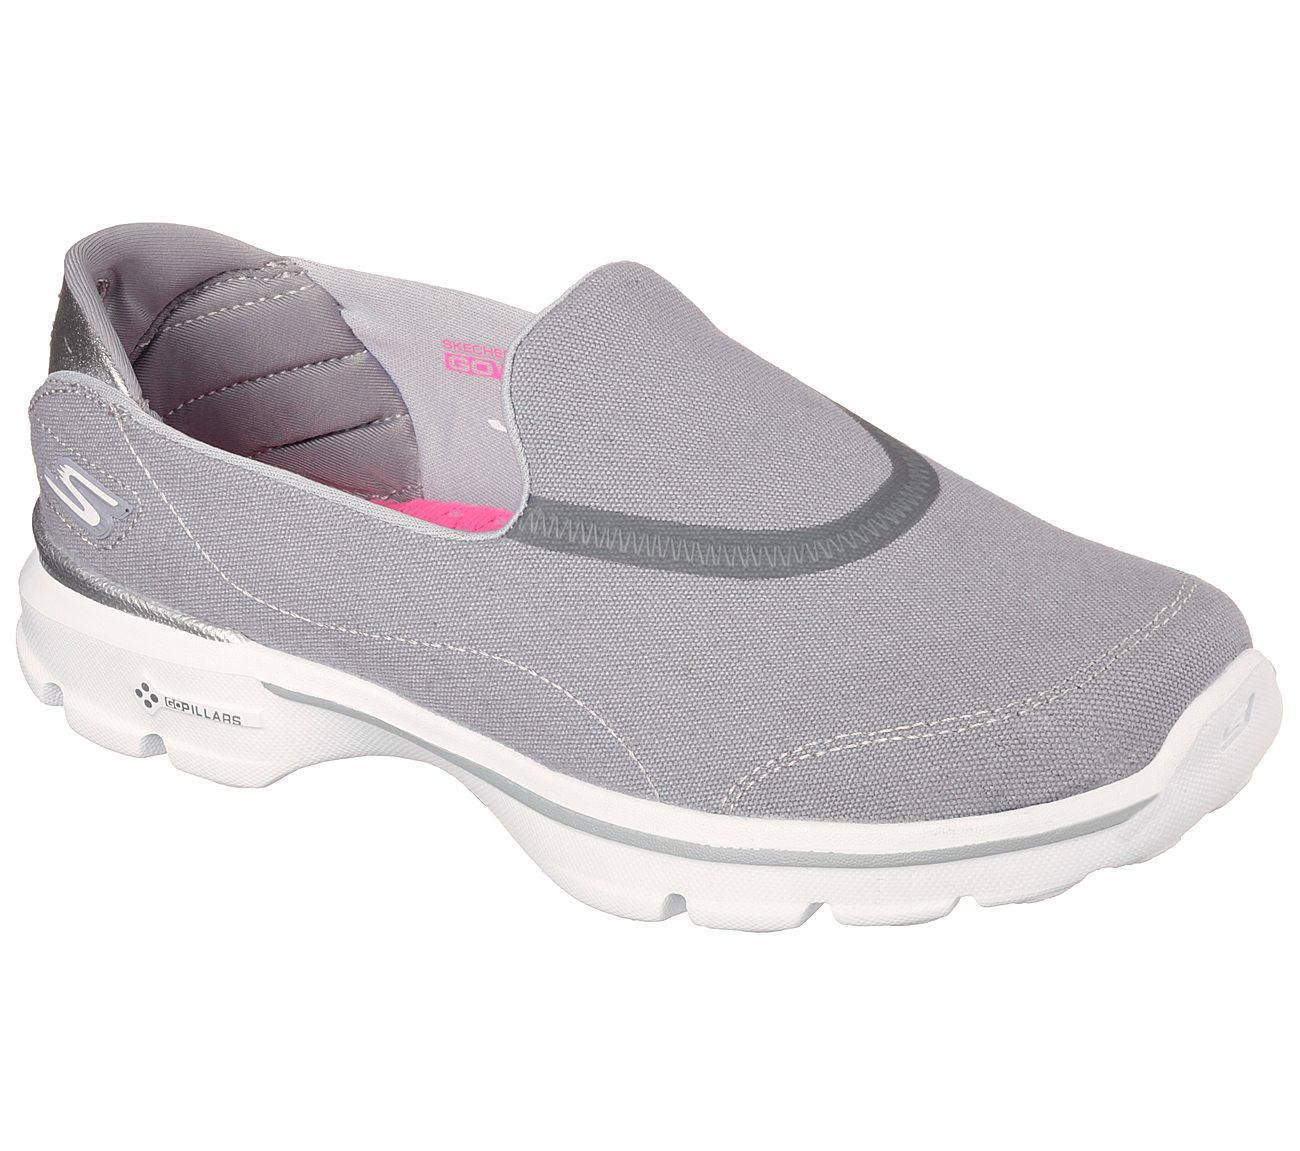 90673d71cab2 Buy SKECHERS Skechers GOwalk 3 - Spring Lite Skechers Performance ...